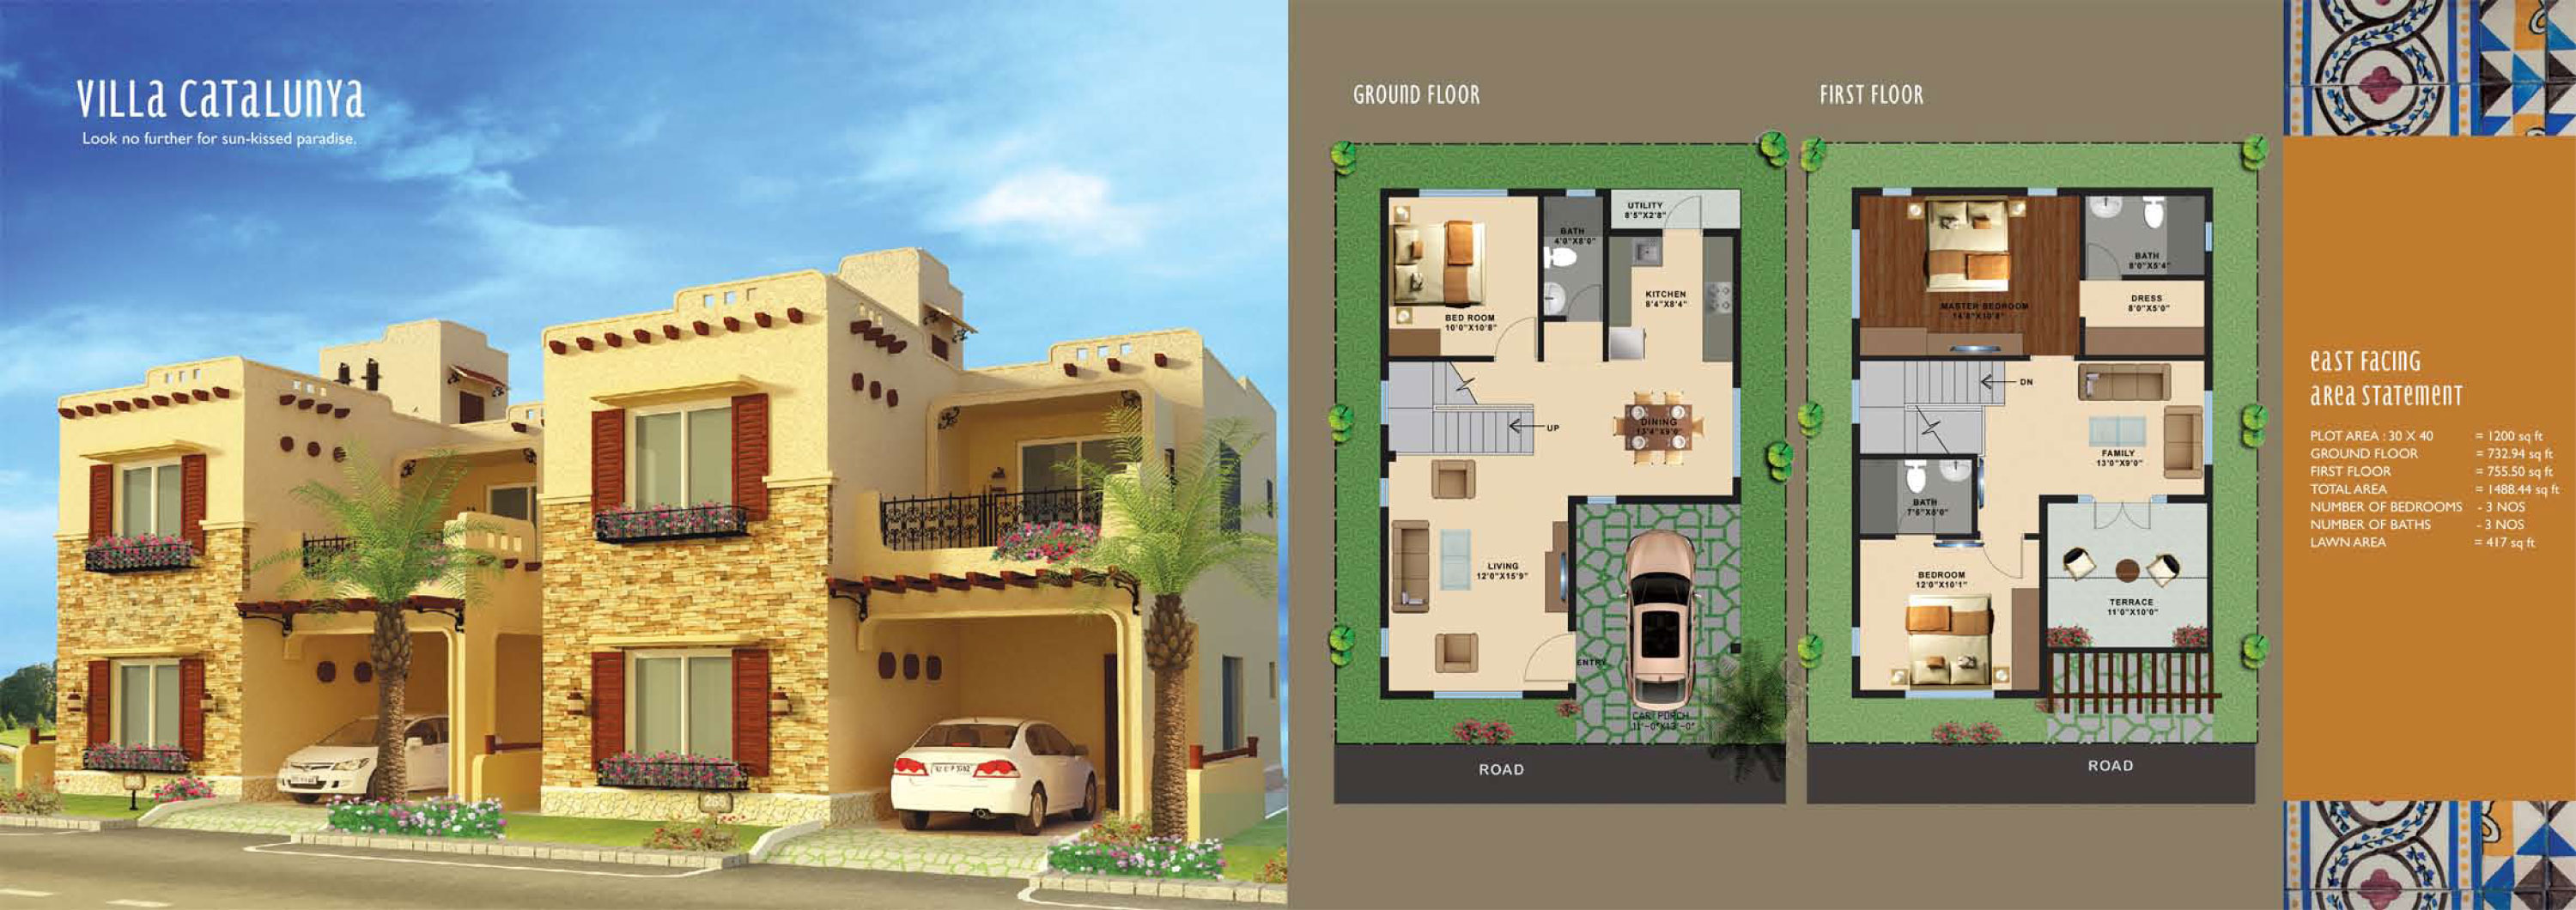 30 x 40 first floor house plans for Duplex house plans indian style 30 40